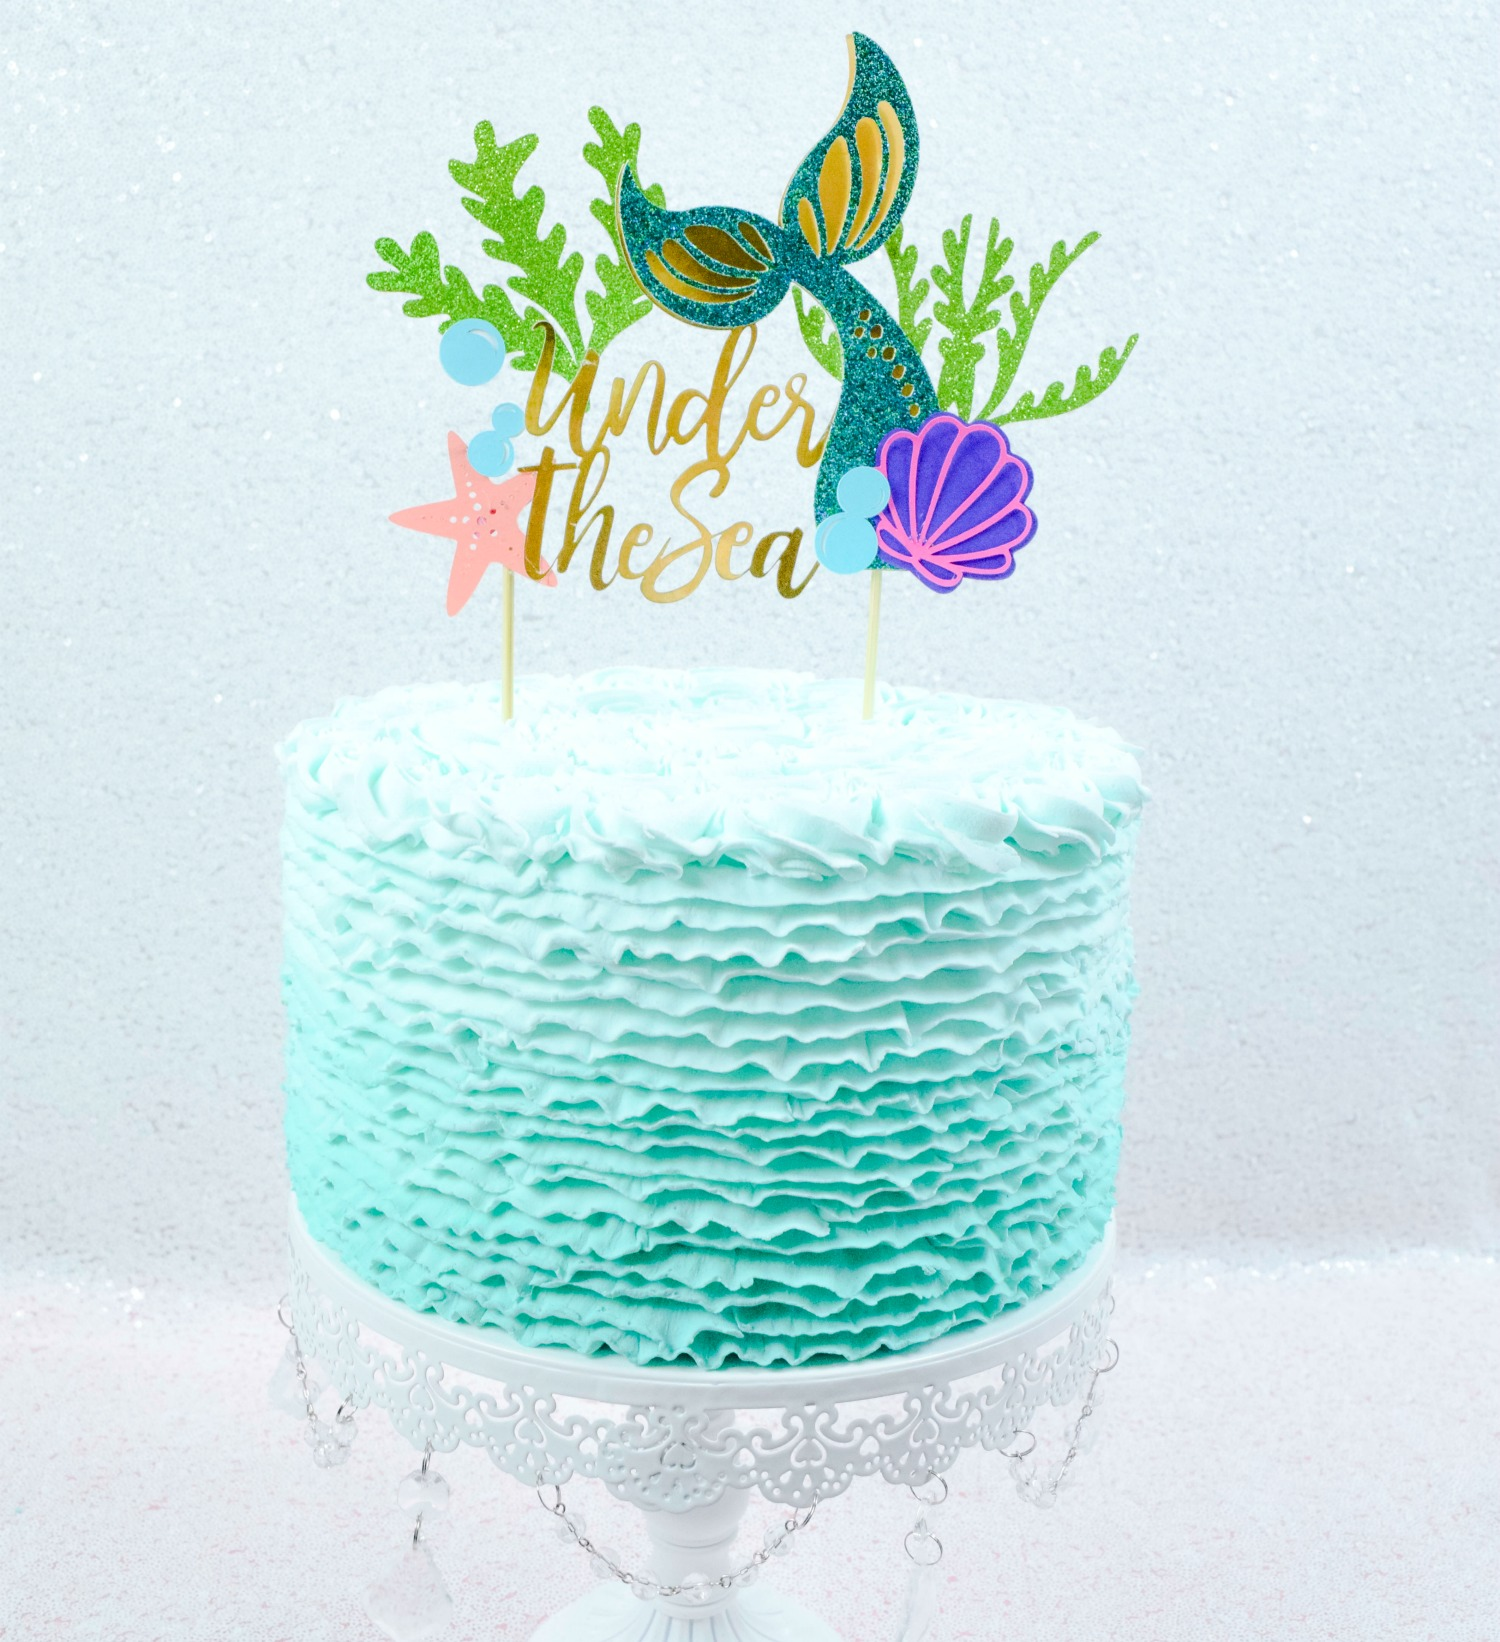 picture about Printable Cake Topper Templates identified as Mermaid Tail Cake Topper: Do-it-yourself Birthday Cake Topper Guideline